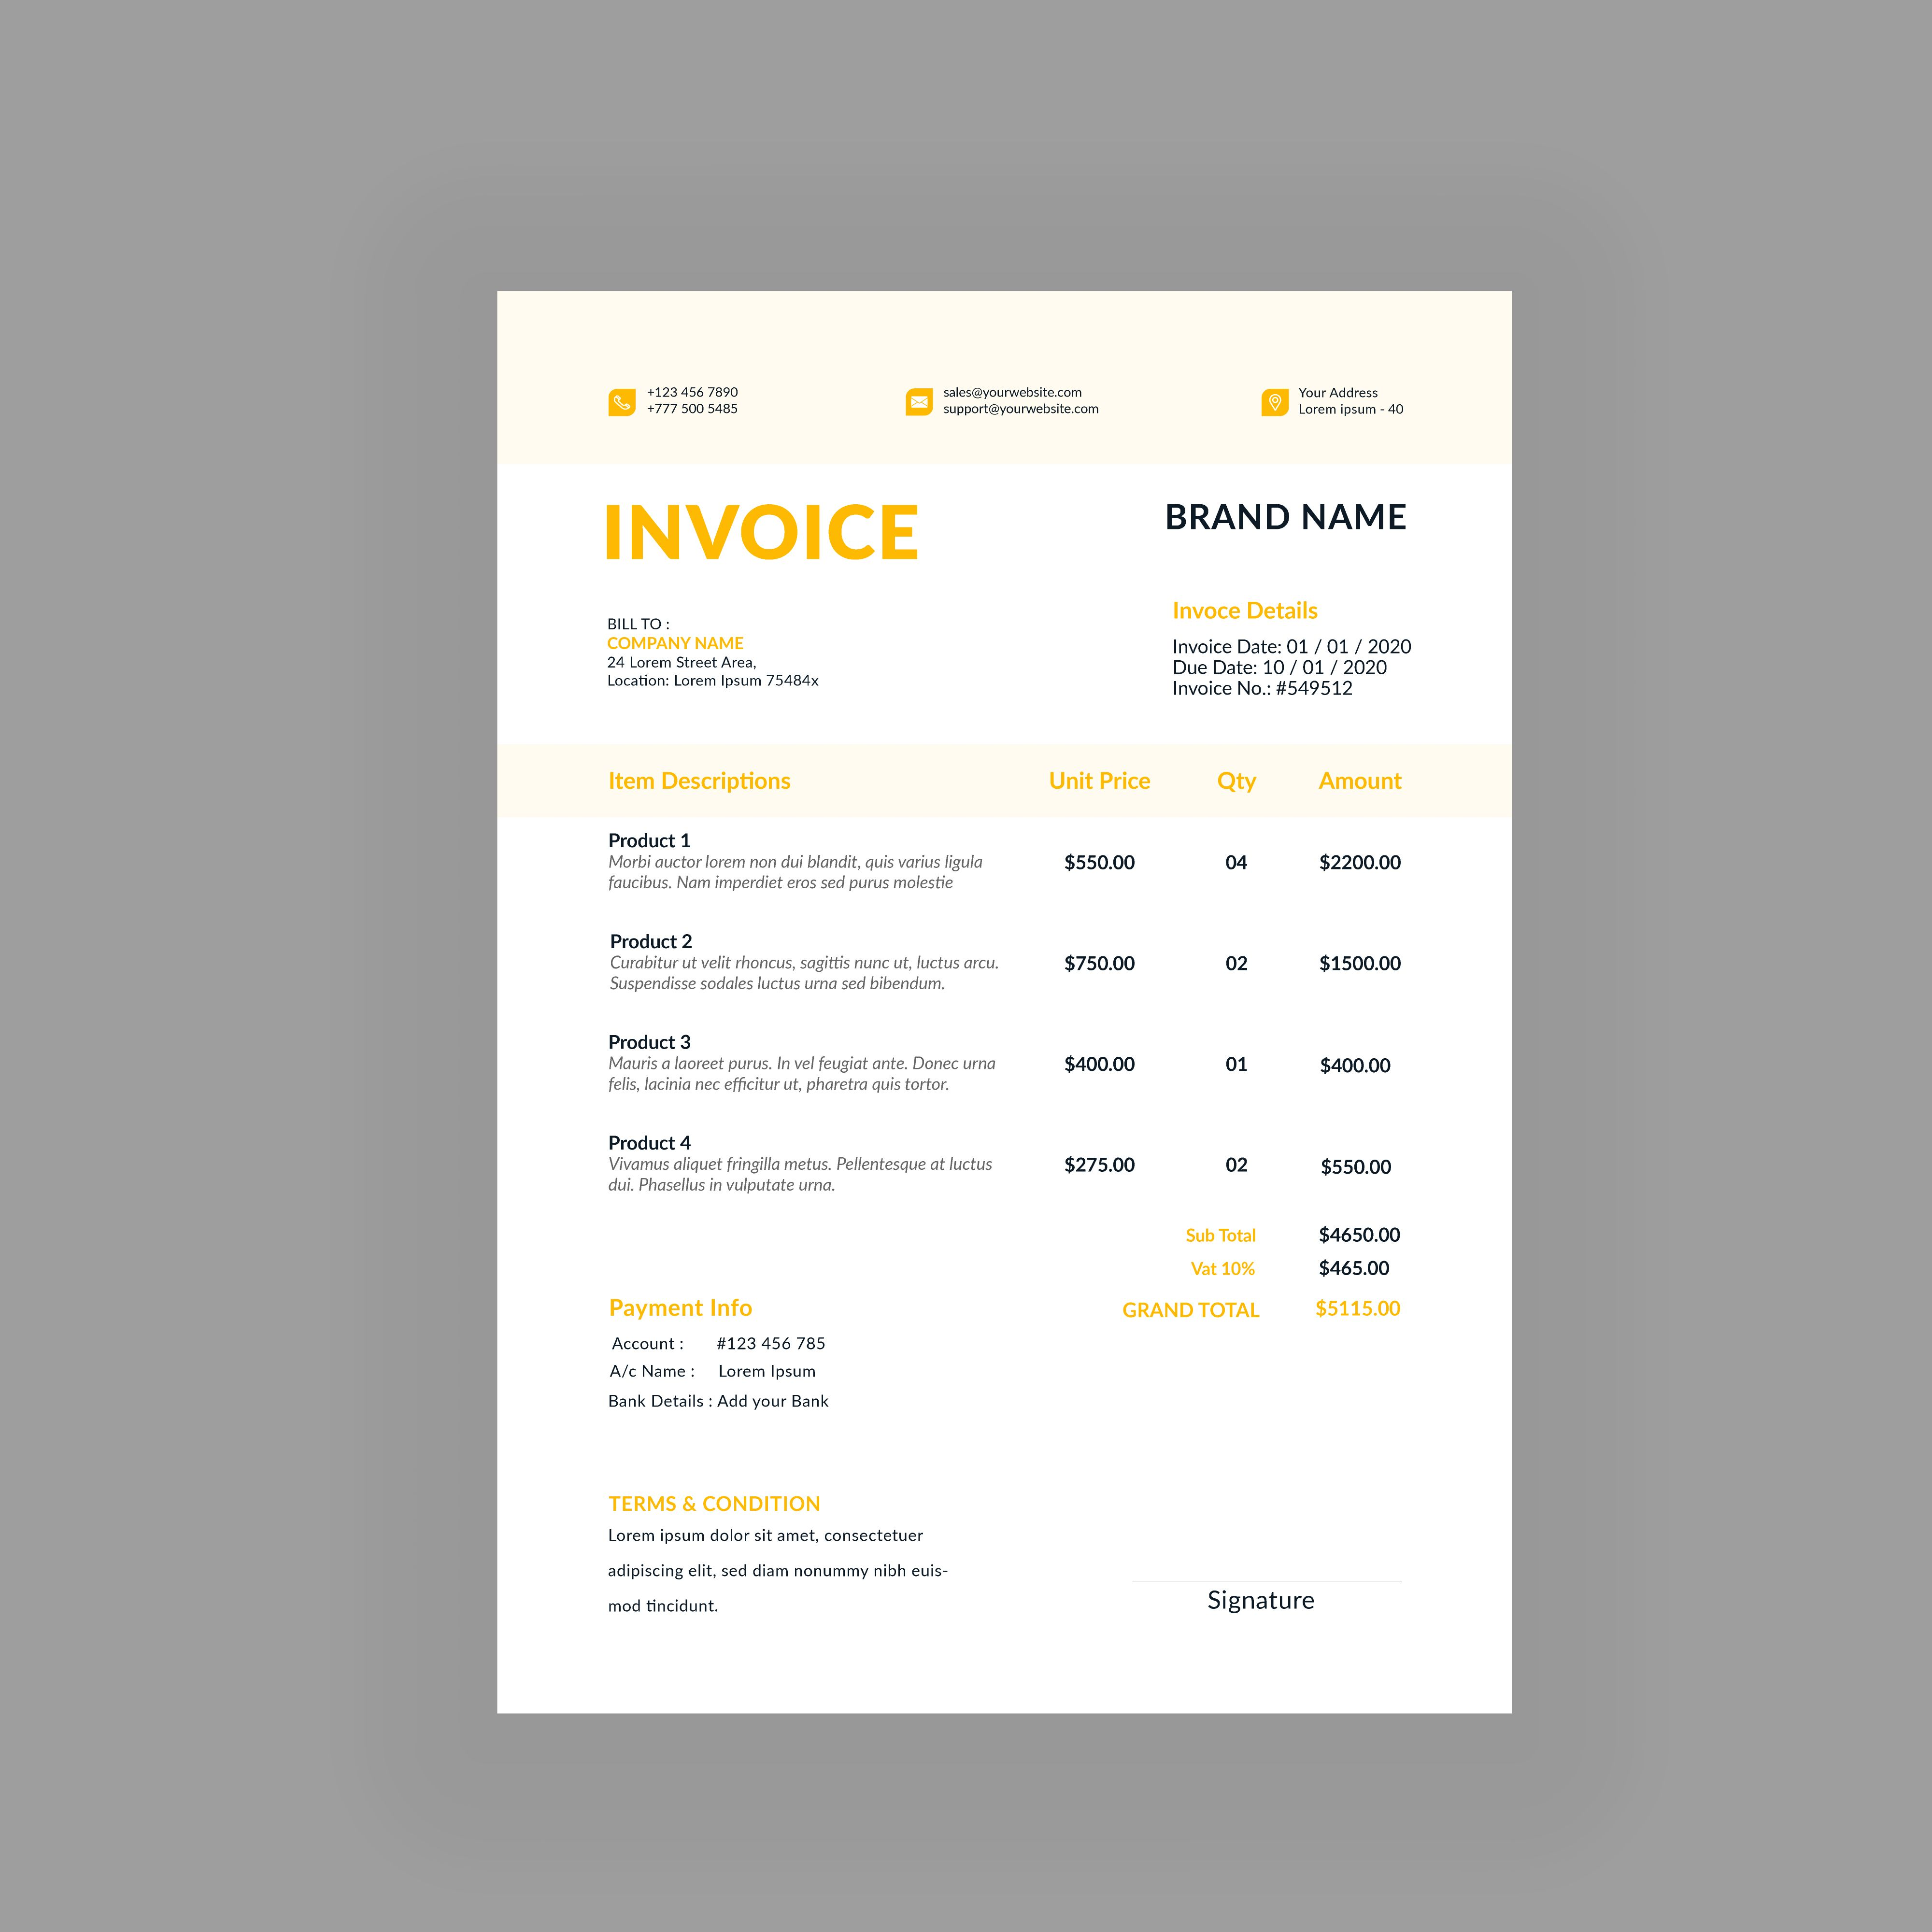 Professional Business Invoice Template Vector Format Voucher Bill Receipt Quotation Sale In 2021 Invoice Template Quotations Templates